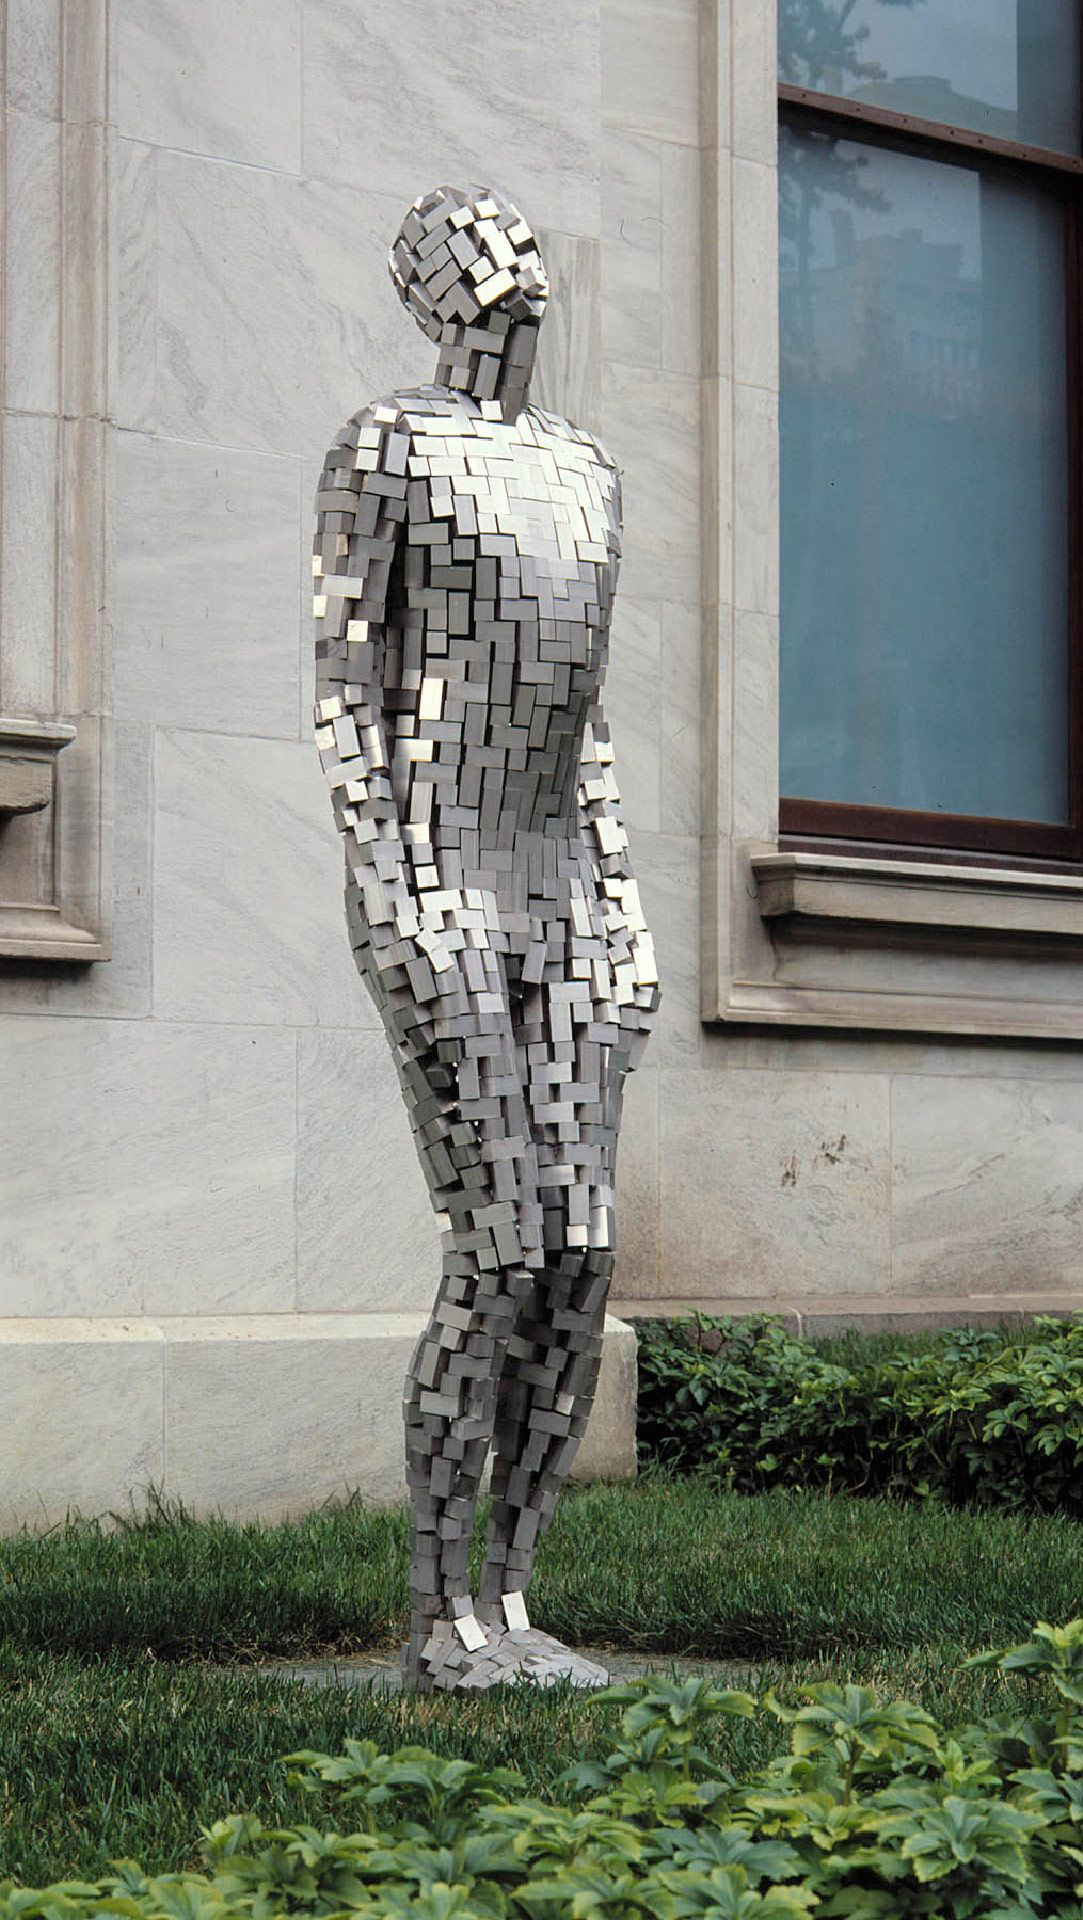 Antony Gormley, Building VI, 2003, stainless steel blocks. MMFA, purchase, Dr. and Mrs. Max Stern Bequest